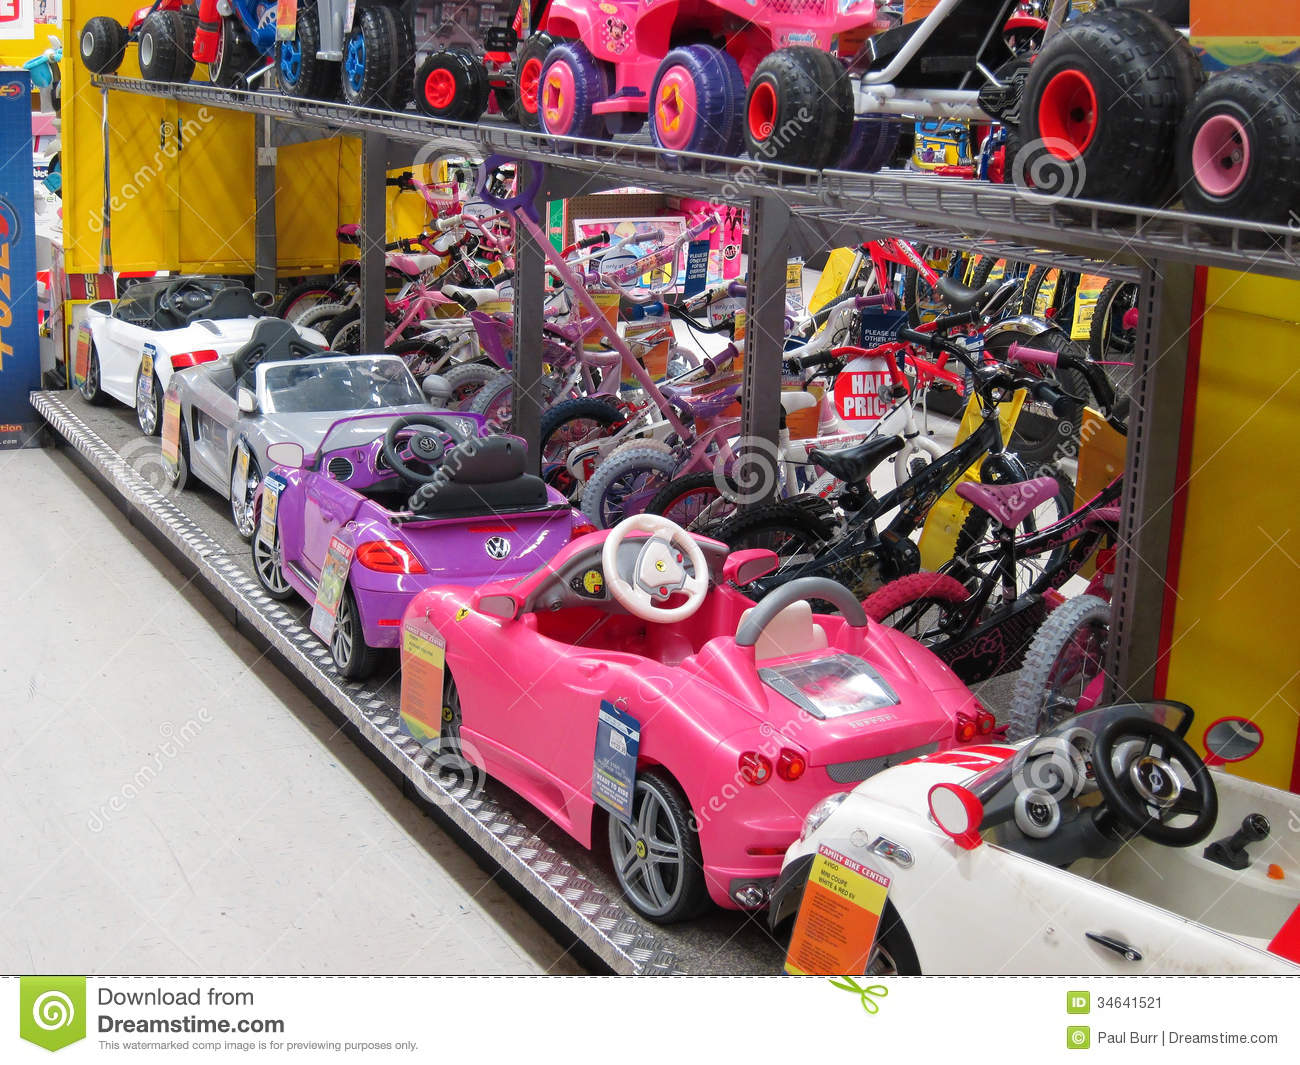 Toys R Us Toy Cars : Toy electric cars in a store editorial photo image